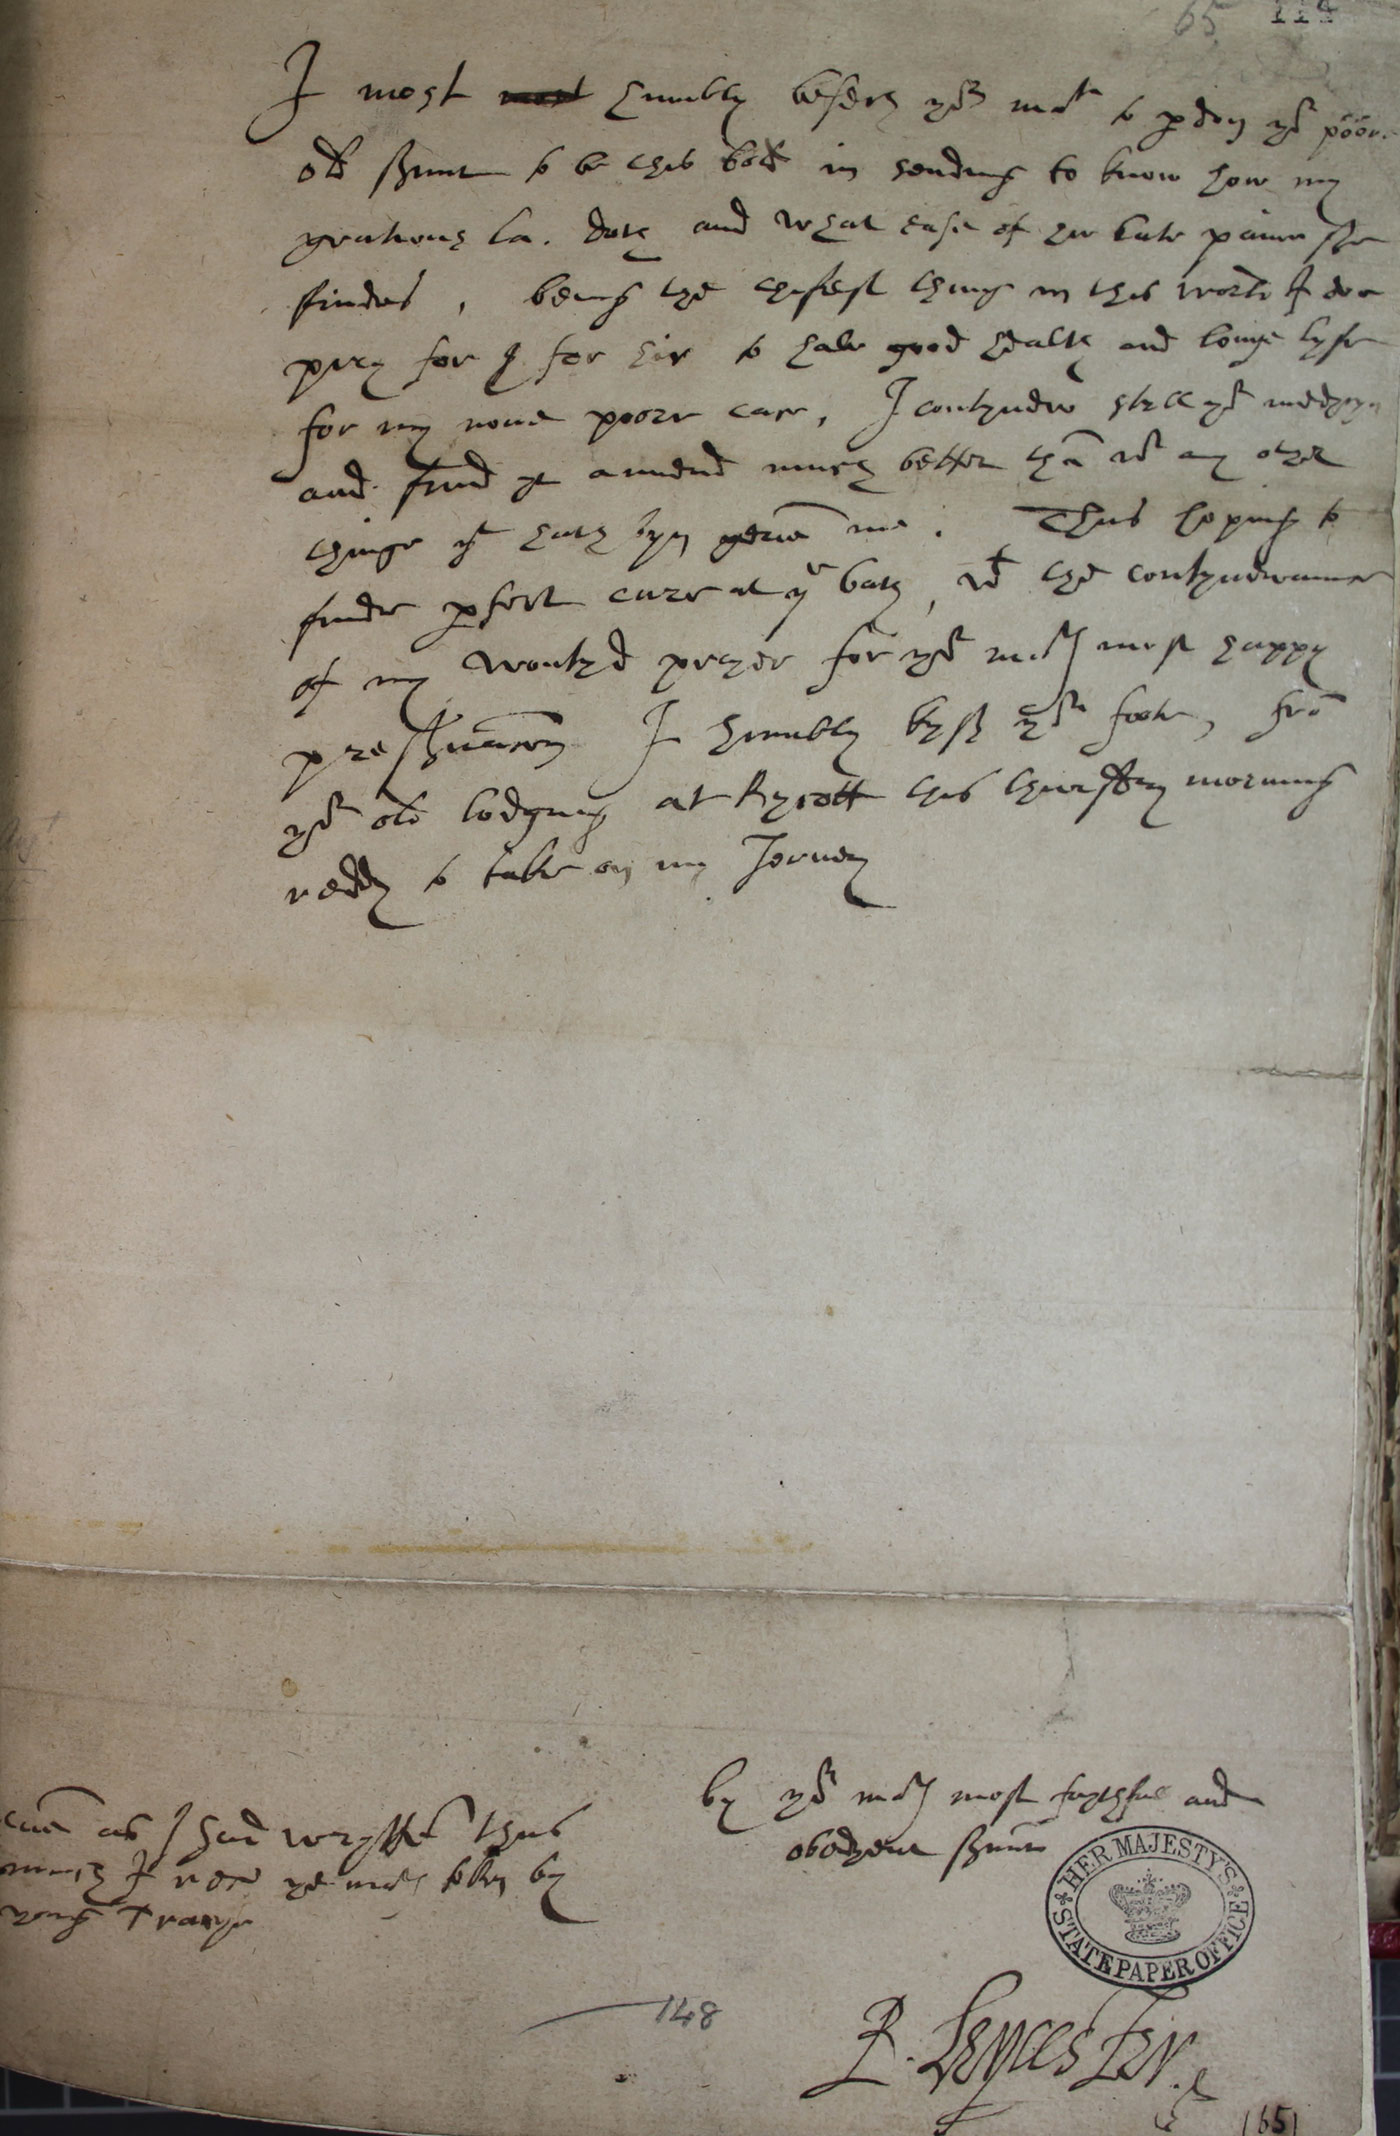 Robert Dudley, Earl of Leicester to Elizabeth, 29 August 1588 (SP 12/215 f.114)